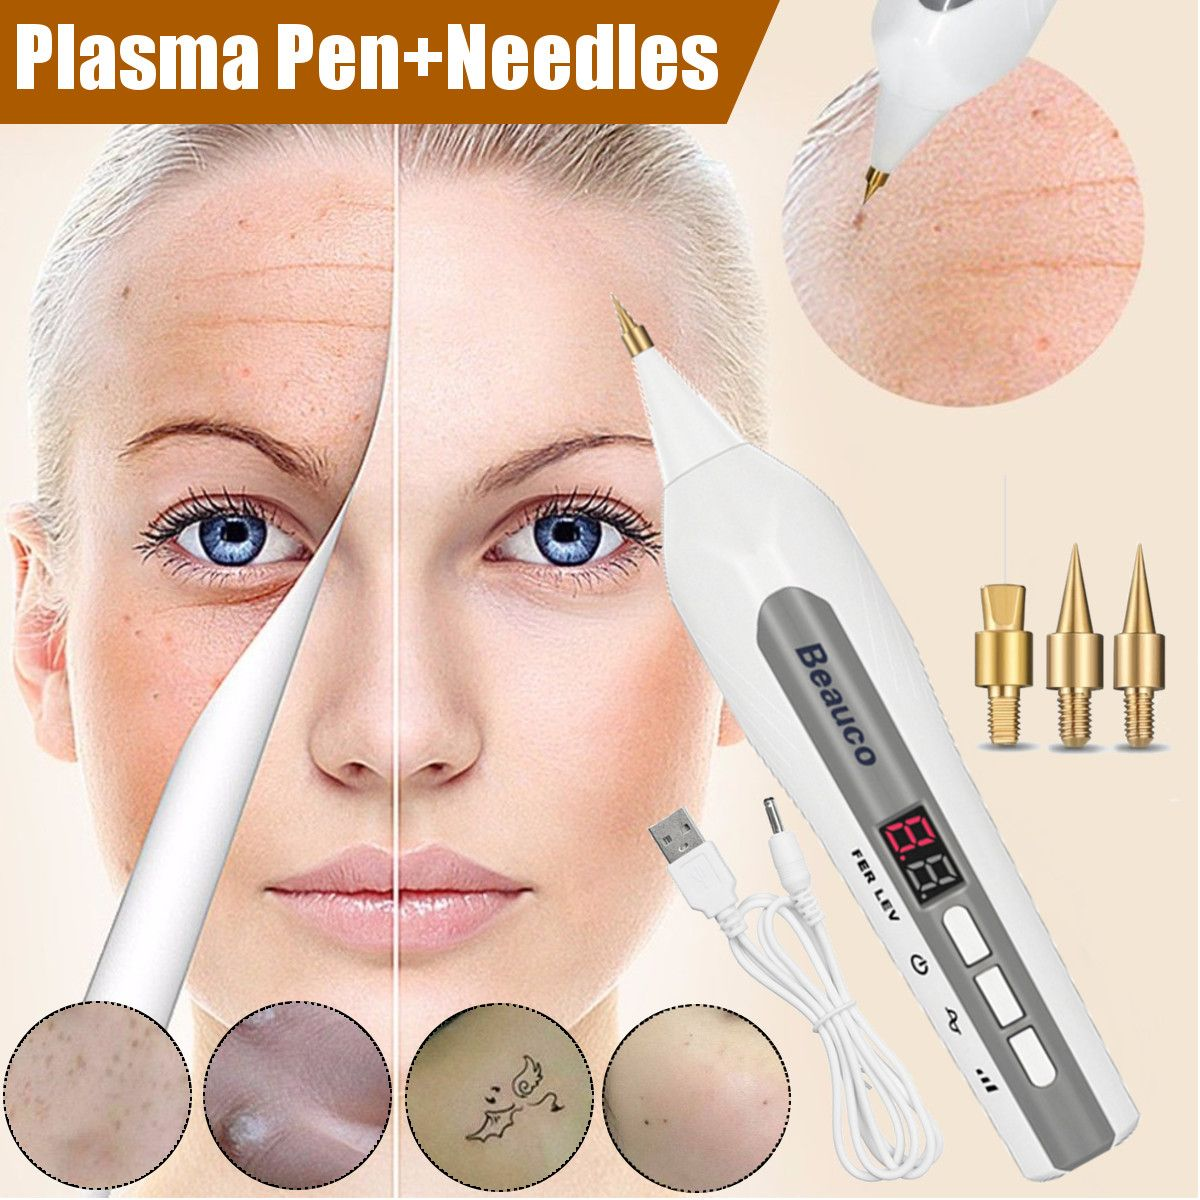 Newest Fibroblast <font><b>Plasma</b></font> <font><b>Pen</b></font> for Face <font><b>Eyelid</b></font> <font><b>Lift</b></font> Wrinkle <font><b>Removal</b></font> Spot <font><b>Removal</b></font> Plasmapen Skin <font><b>Lift</b></font> Usb 4 Files Adjustable 2019 image